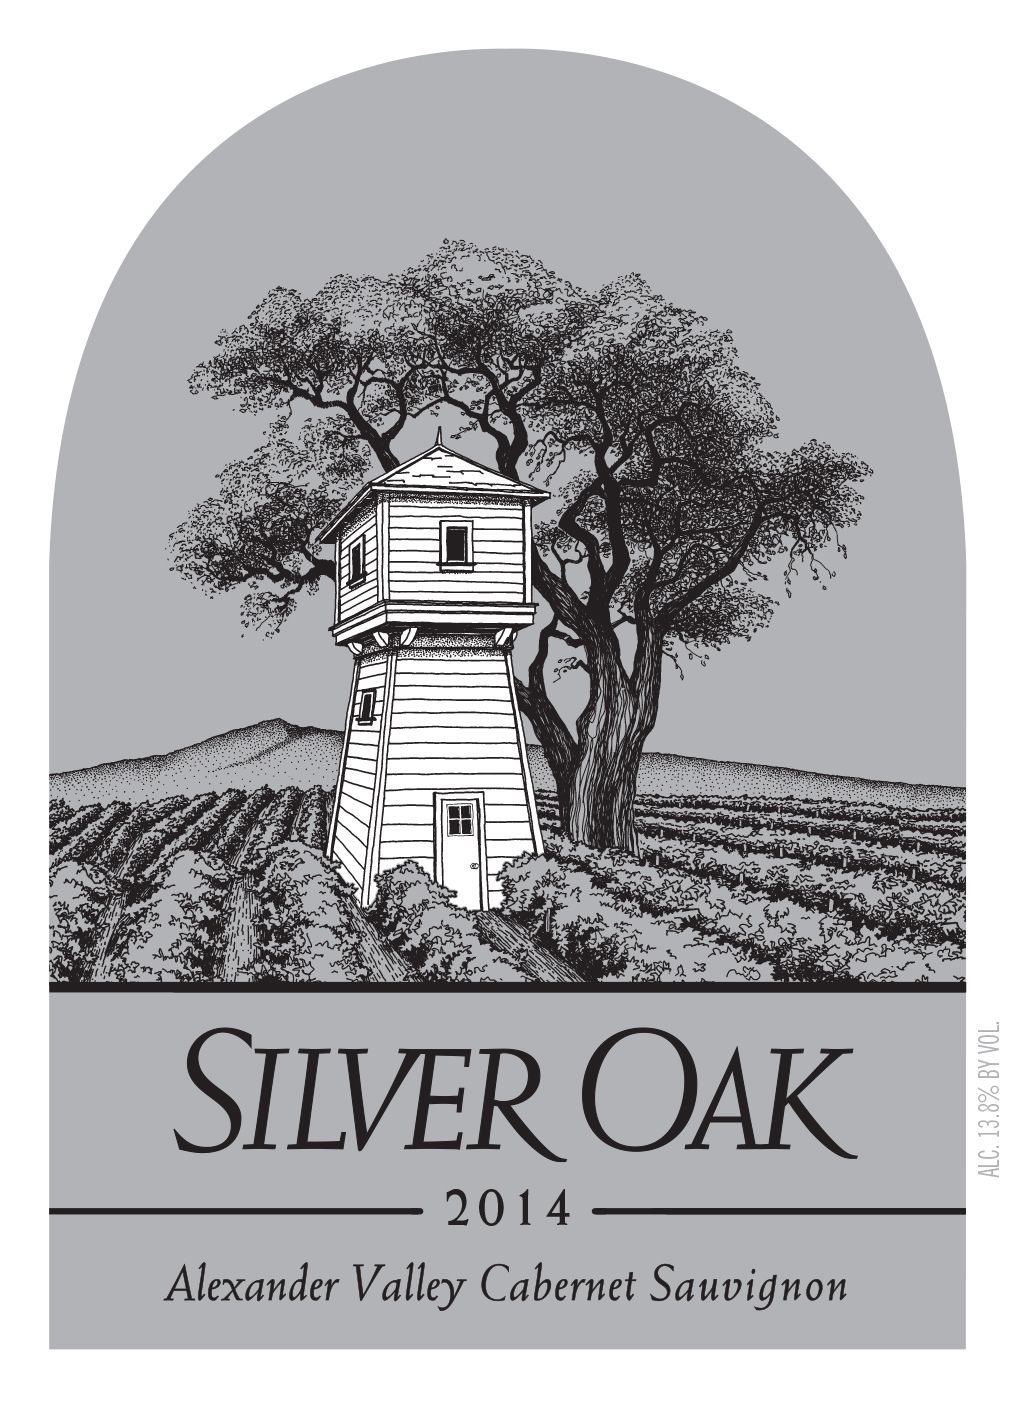 Silver Oak Alexander Valley Cabernet Sauvignon (6 Liter Bottle) 2014 Front Label